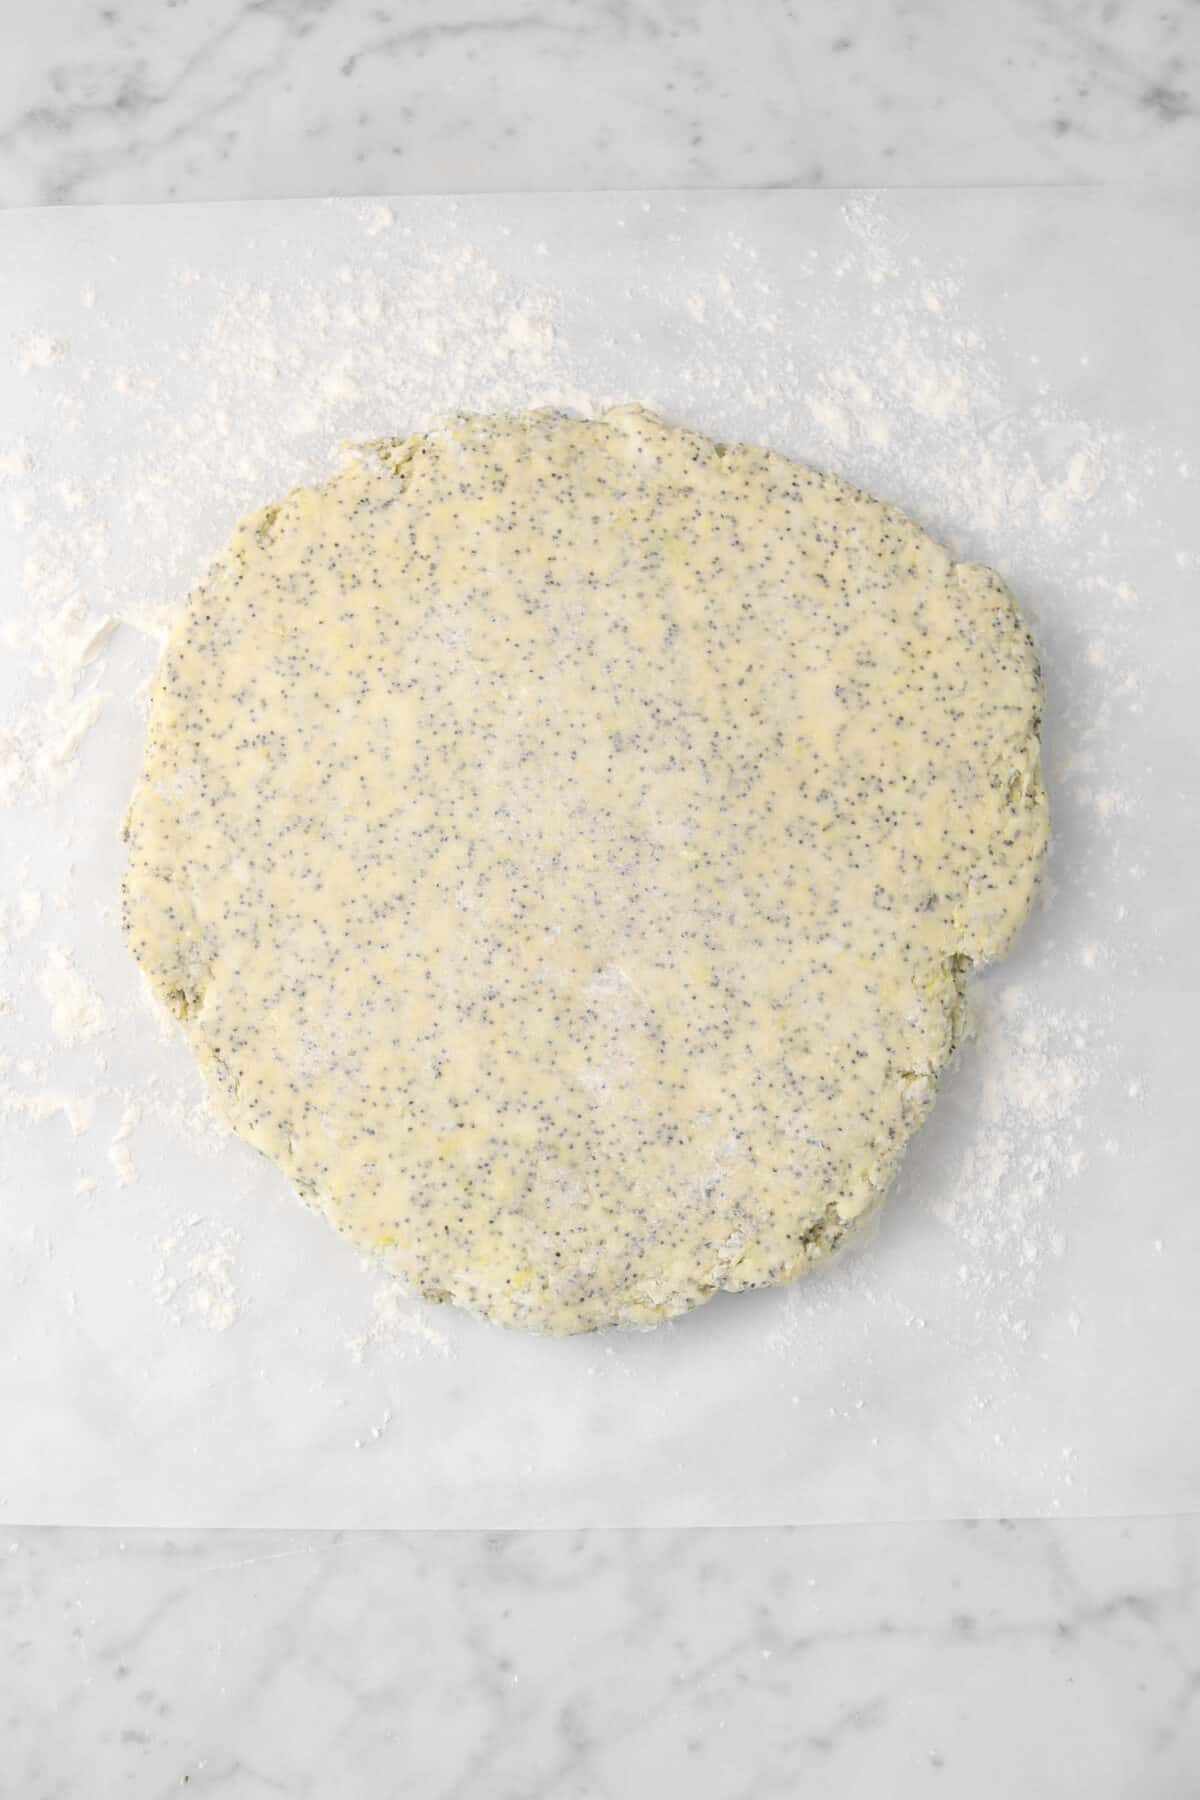 scone dough rolled out on parchment